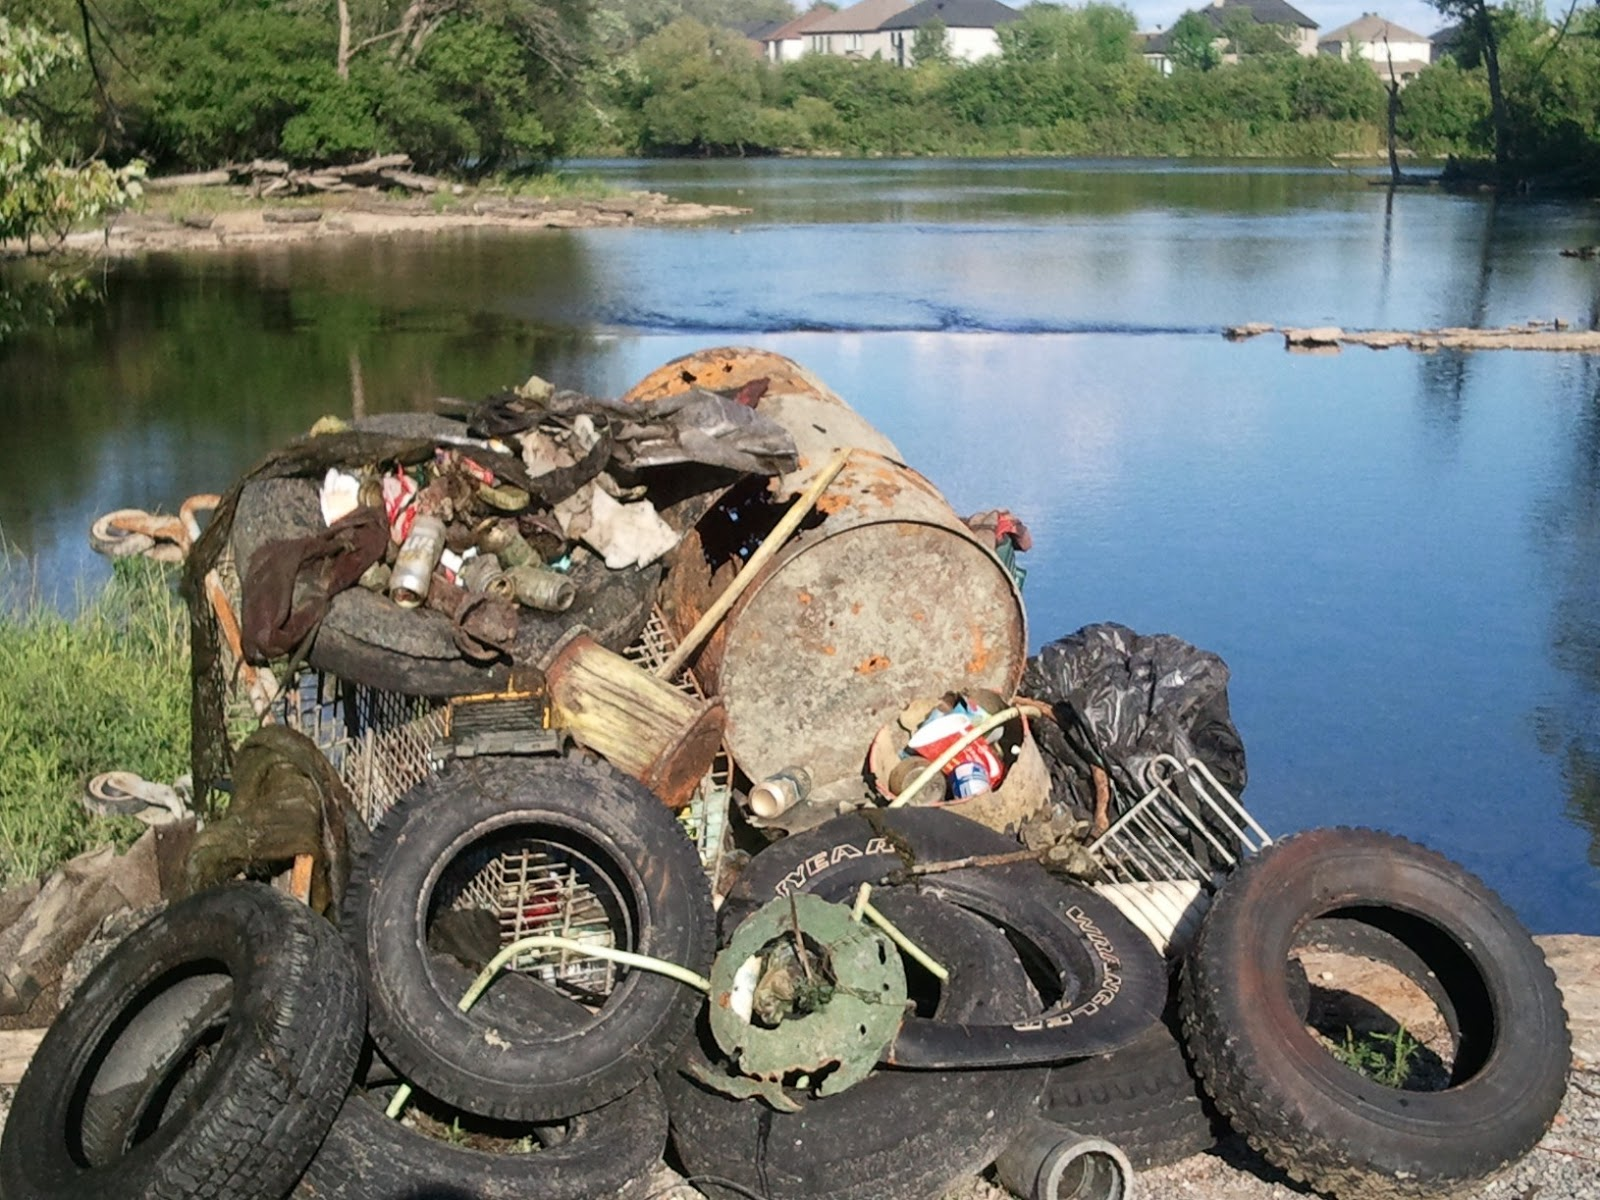 Mississippi River Clean Up In Carleton Place